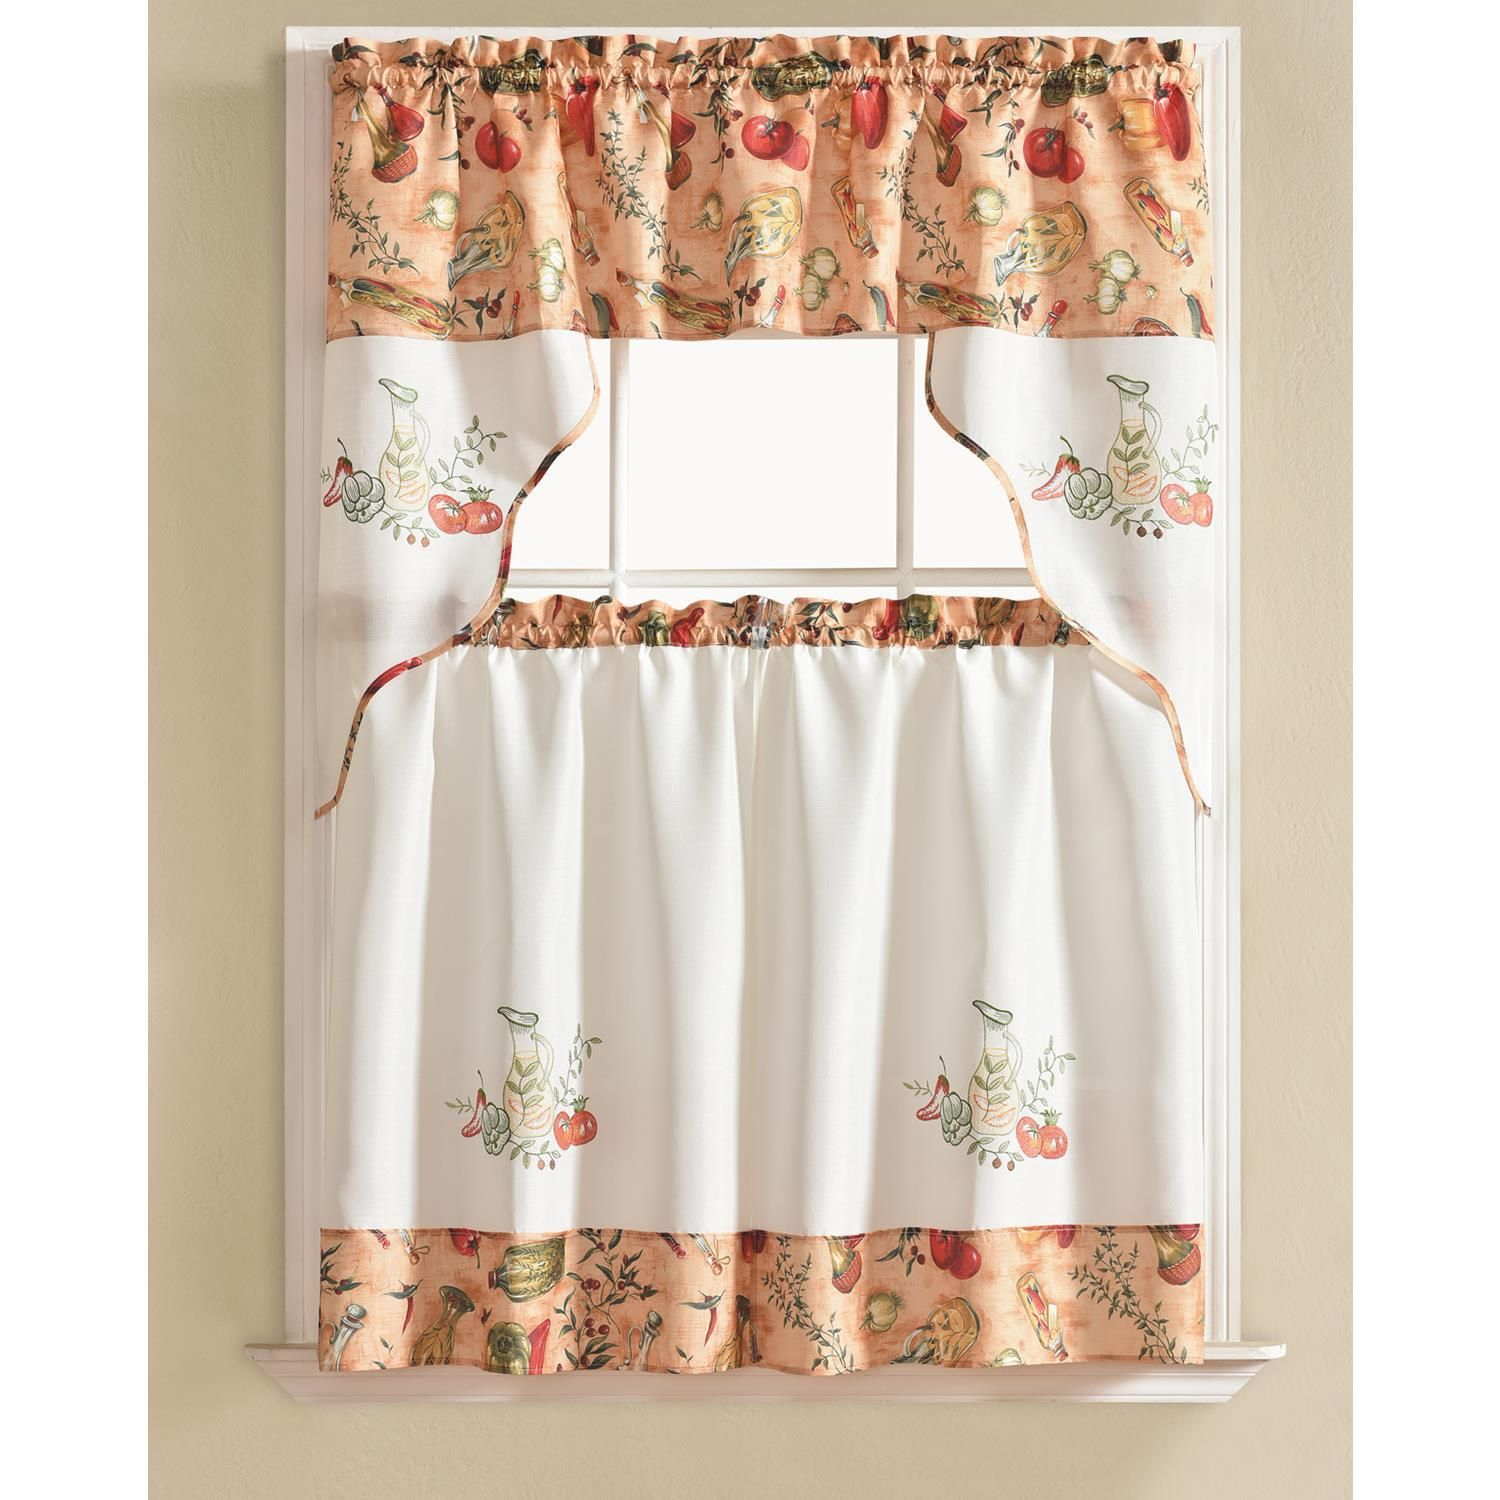 Urban Embroidered Vegetable Tier And Valance Kitchen Curtain Throughout Traditional Two Piece Tailored Tier And Valance Window Curtains (View 6 of 20)